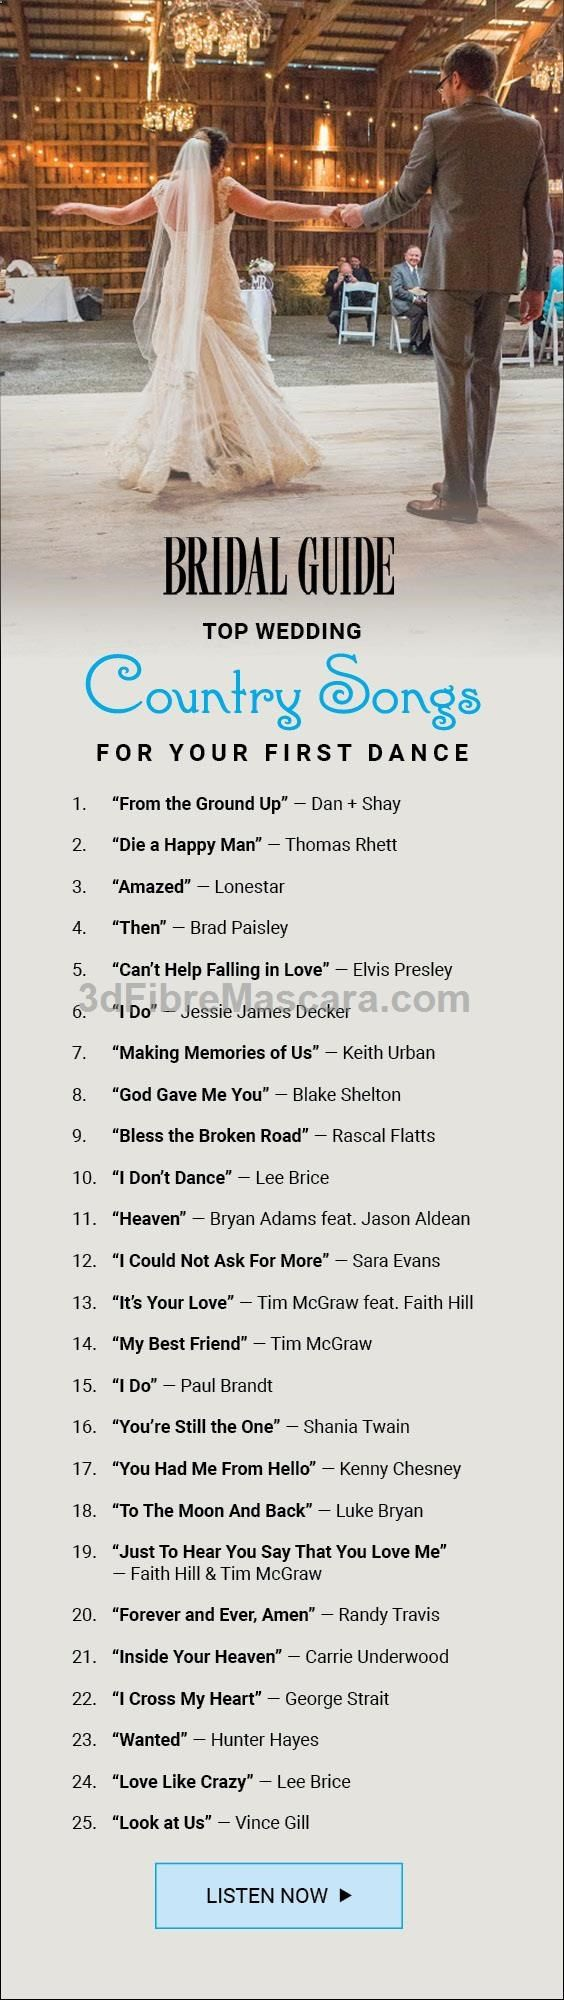 Here are the top country songs for your first dance as a married couple! Our first dance song is definitely going to be All of Me, but these are some great ideas to add in slow songs to the mix #weddings #wedding #marriage #weddingdress #weddinggown #ballgowns #ladies #woman #women #beautifuldress #newlyweds #proposal #shopping #engagement